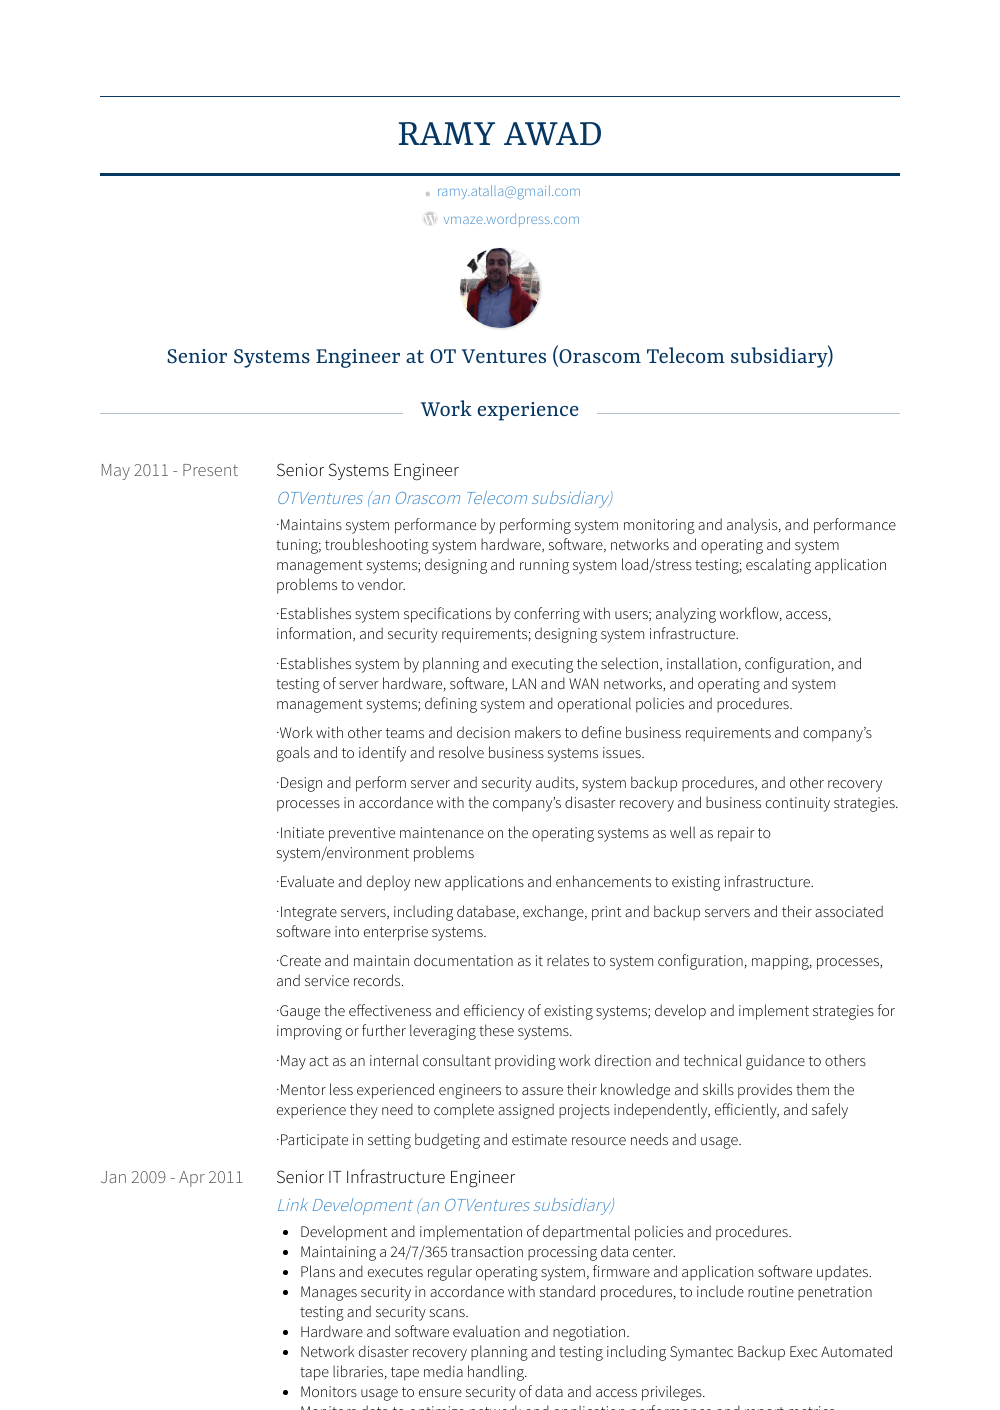 Senior Systems Engineer Resume Samples Templates Visualcv